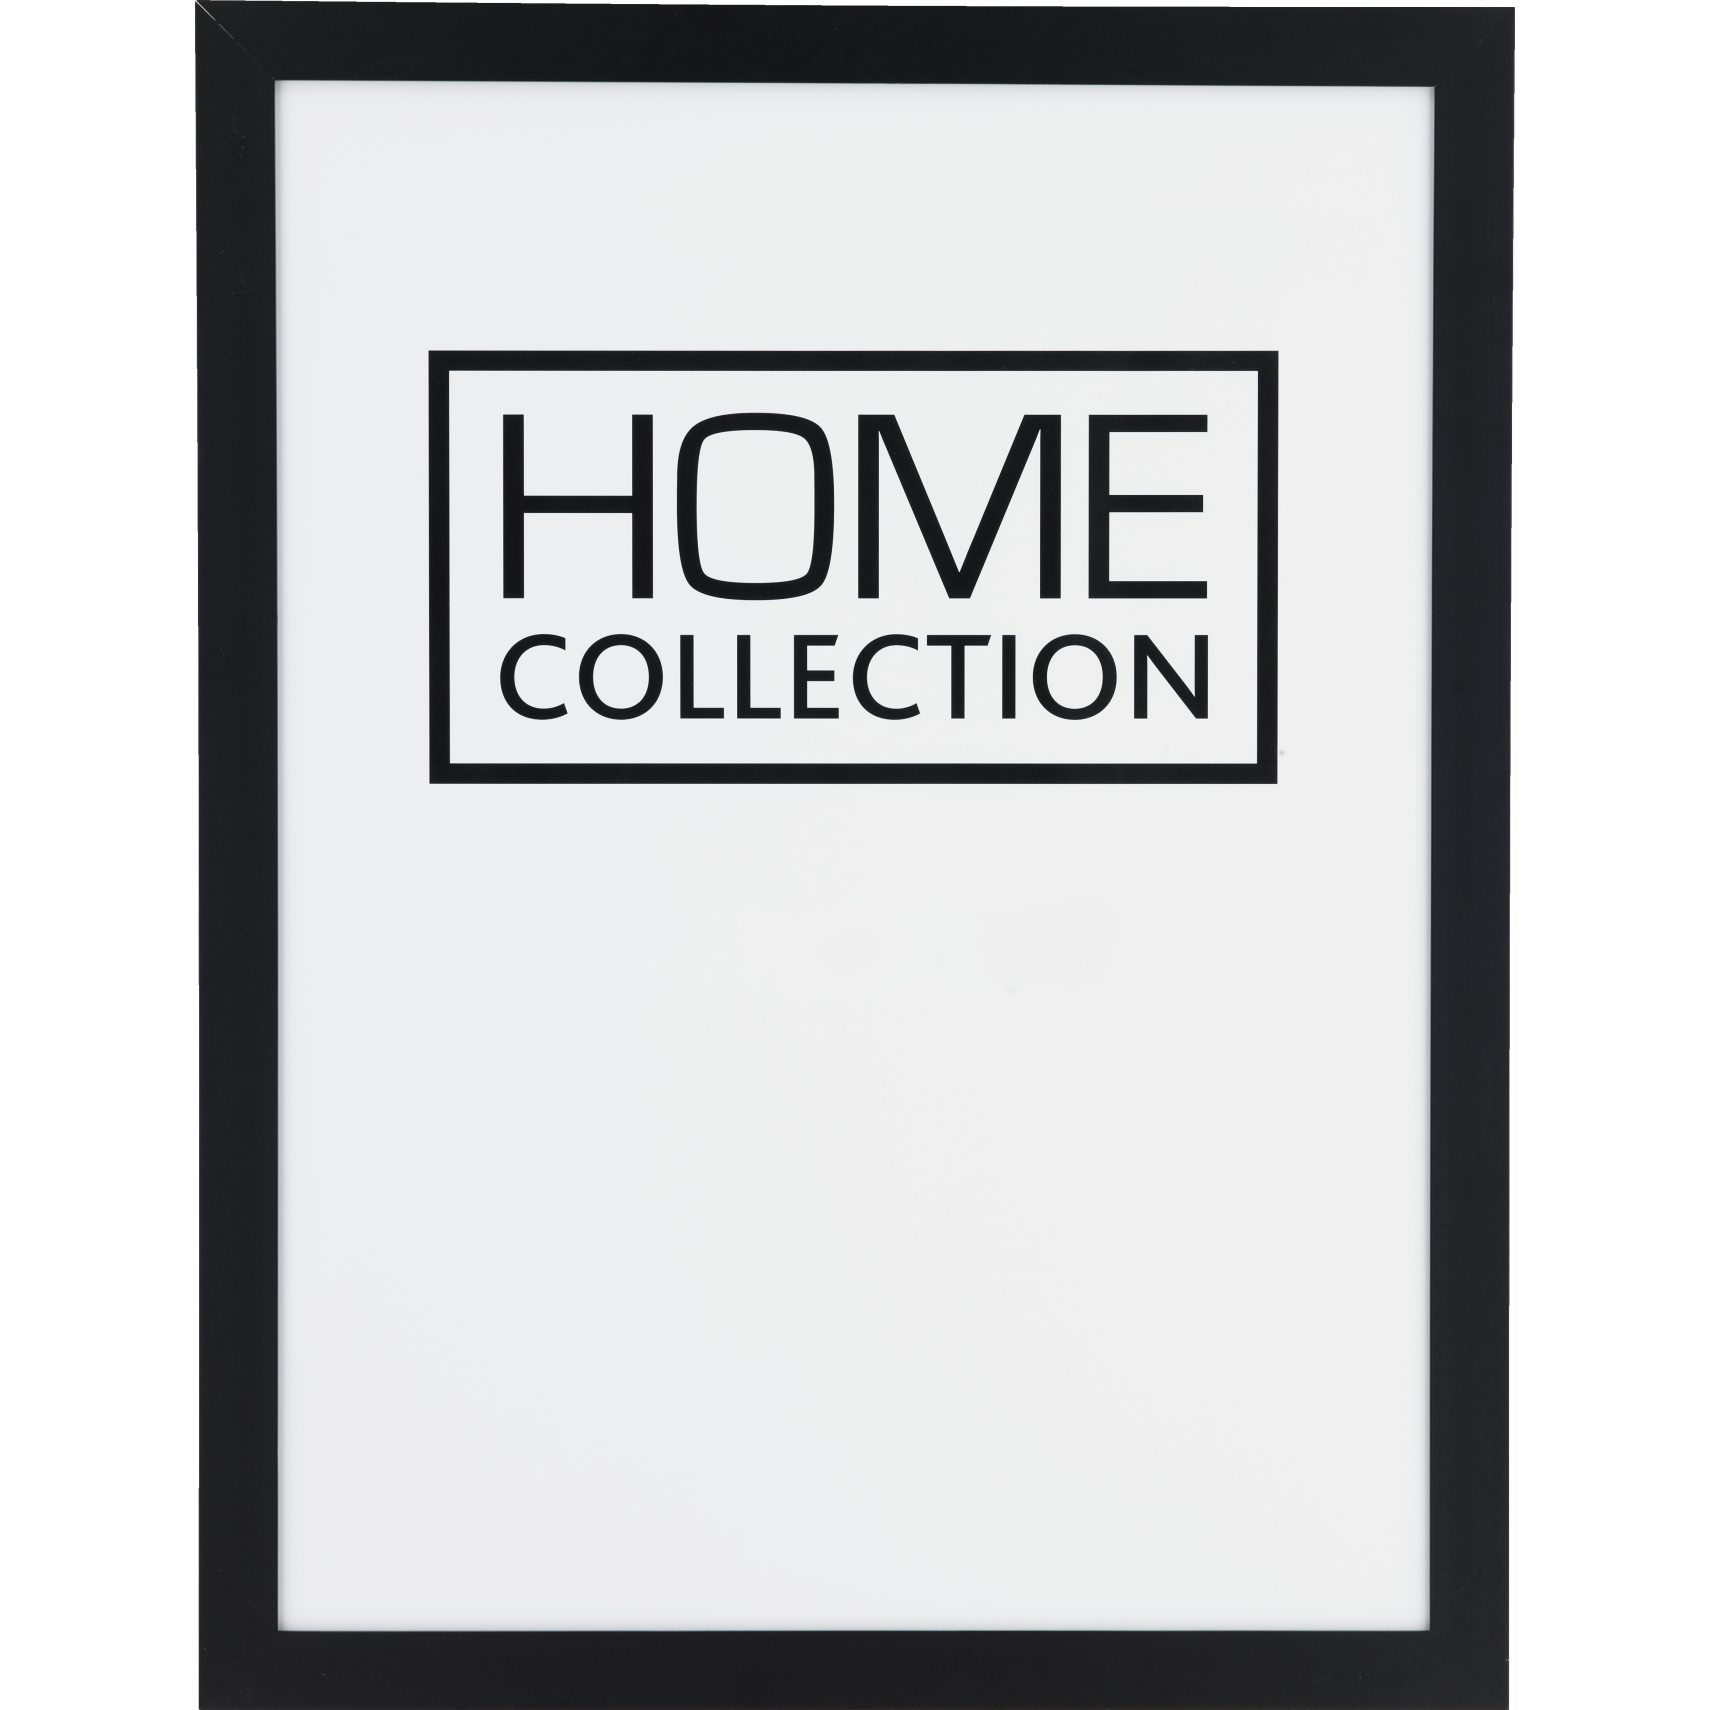 HOME COLLECTION Ramme 60 x 80 x 2 cm - Sort træramme